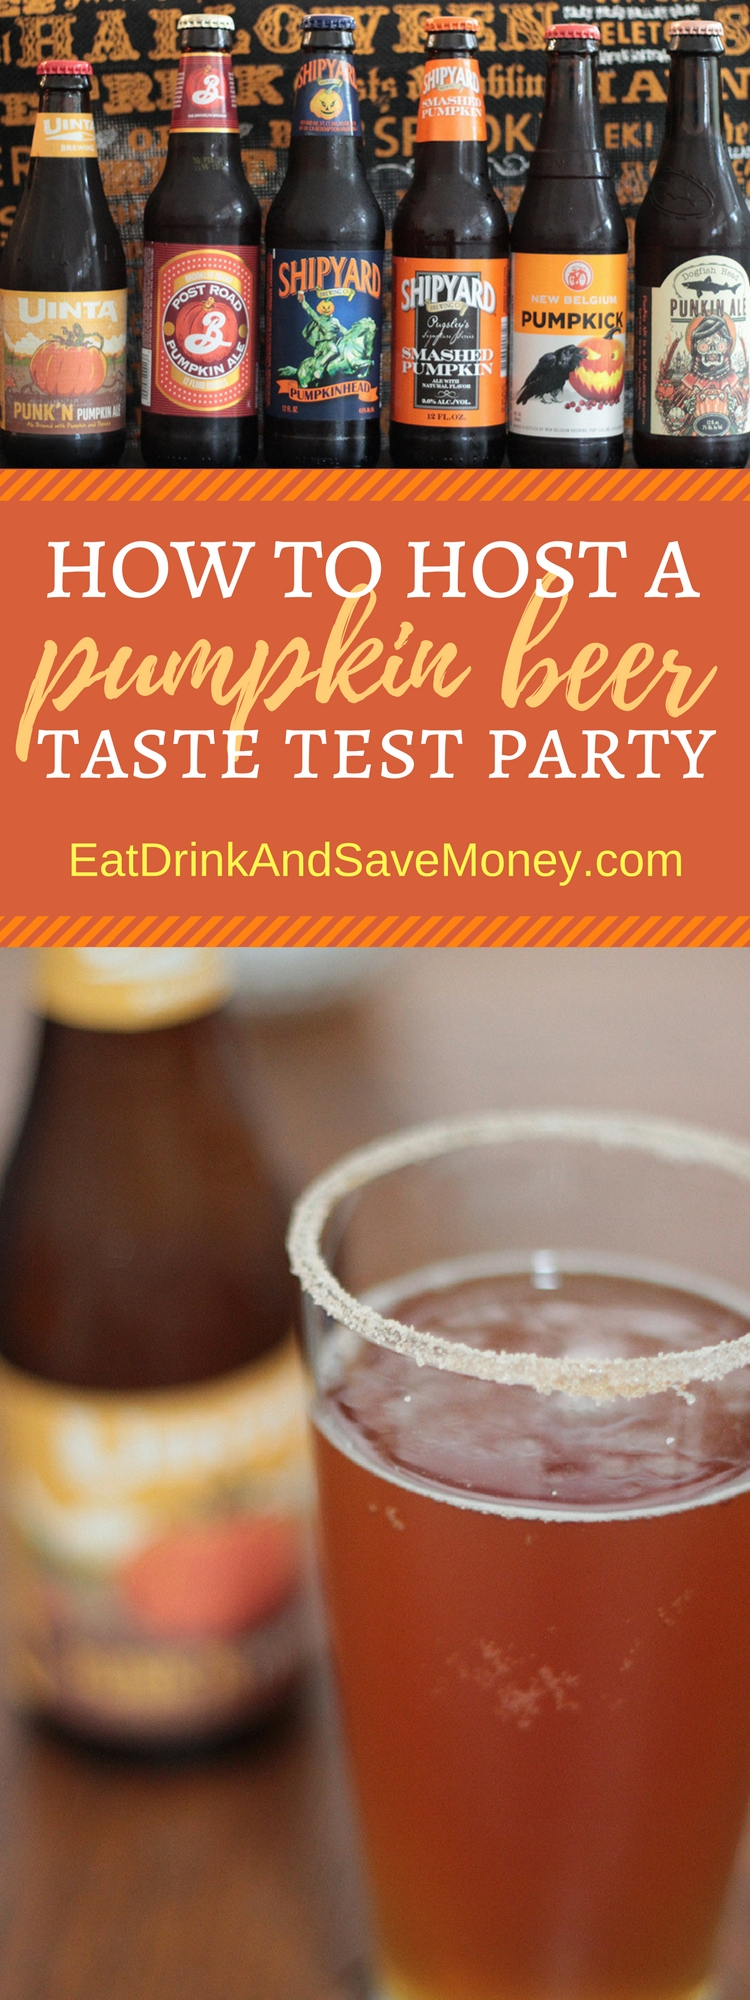 How to host a pumpkin beer taste test party. Follow these tips from a blogger to throw a fun fall party where you taste pumpkin beer.